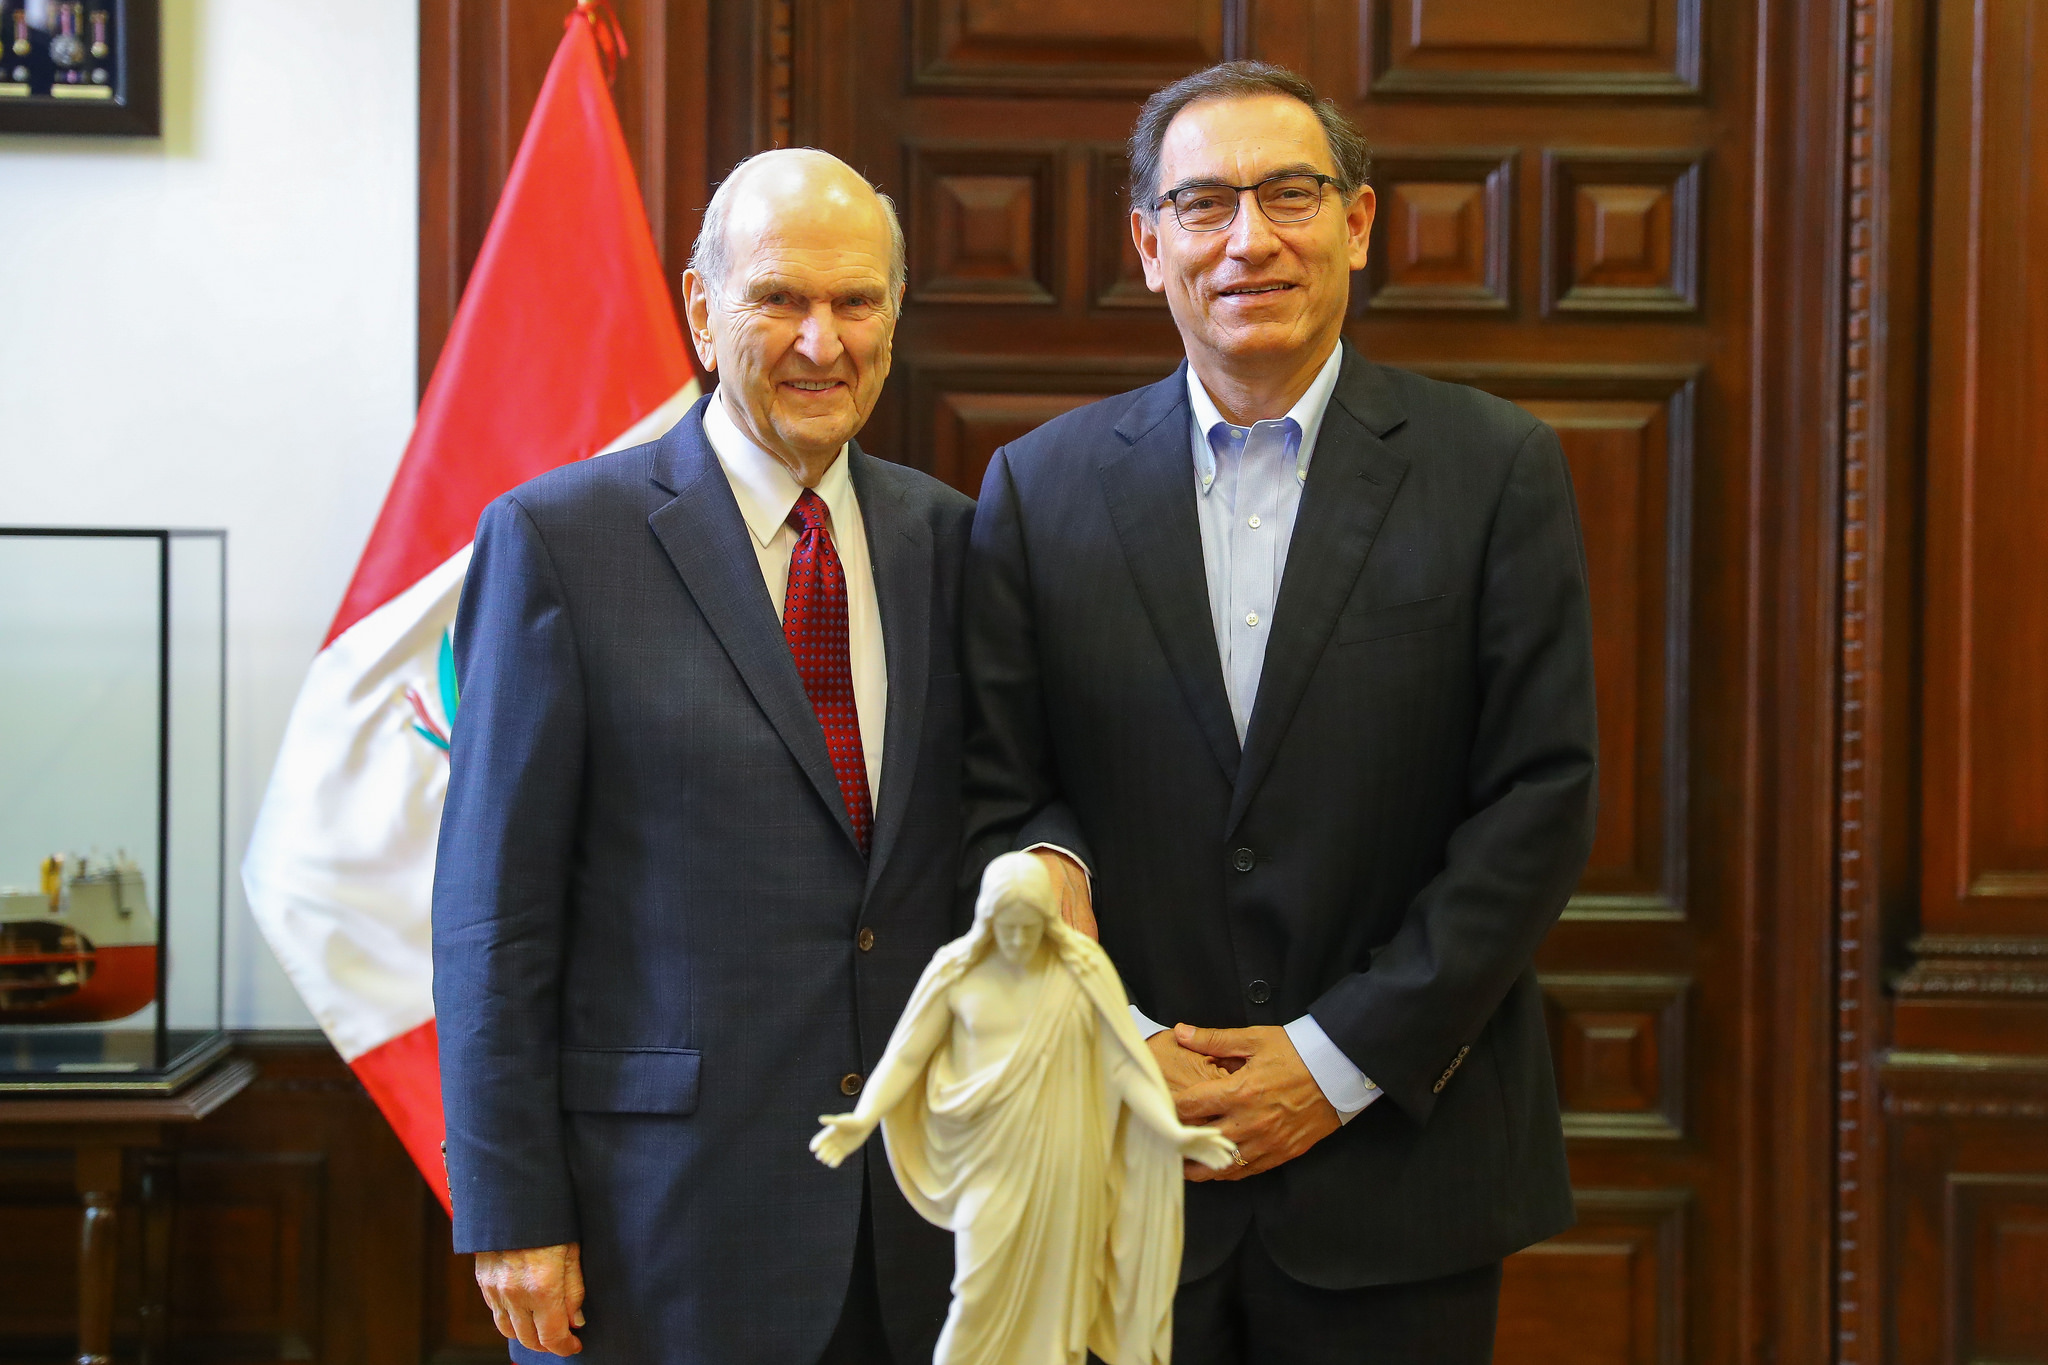 President Russell M. Nelson of The Church of Jesus Christ of Latter-day Saints, left, poses with Peru President Martín Vizcarra at the presidential palace in Lima, Peru, on Saturday, October 20, 2018.